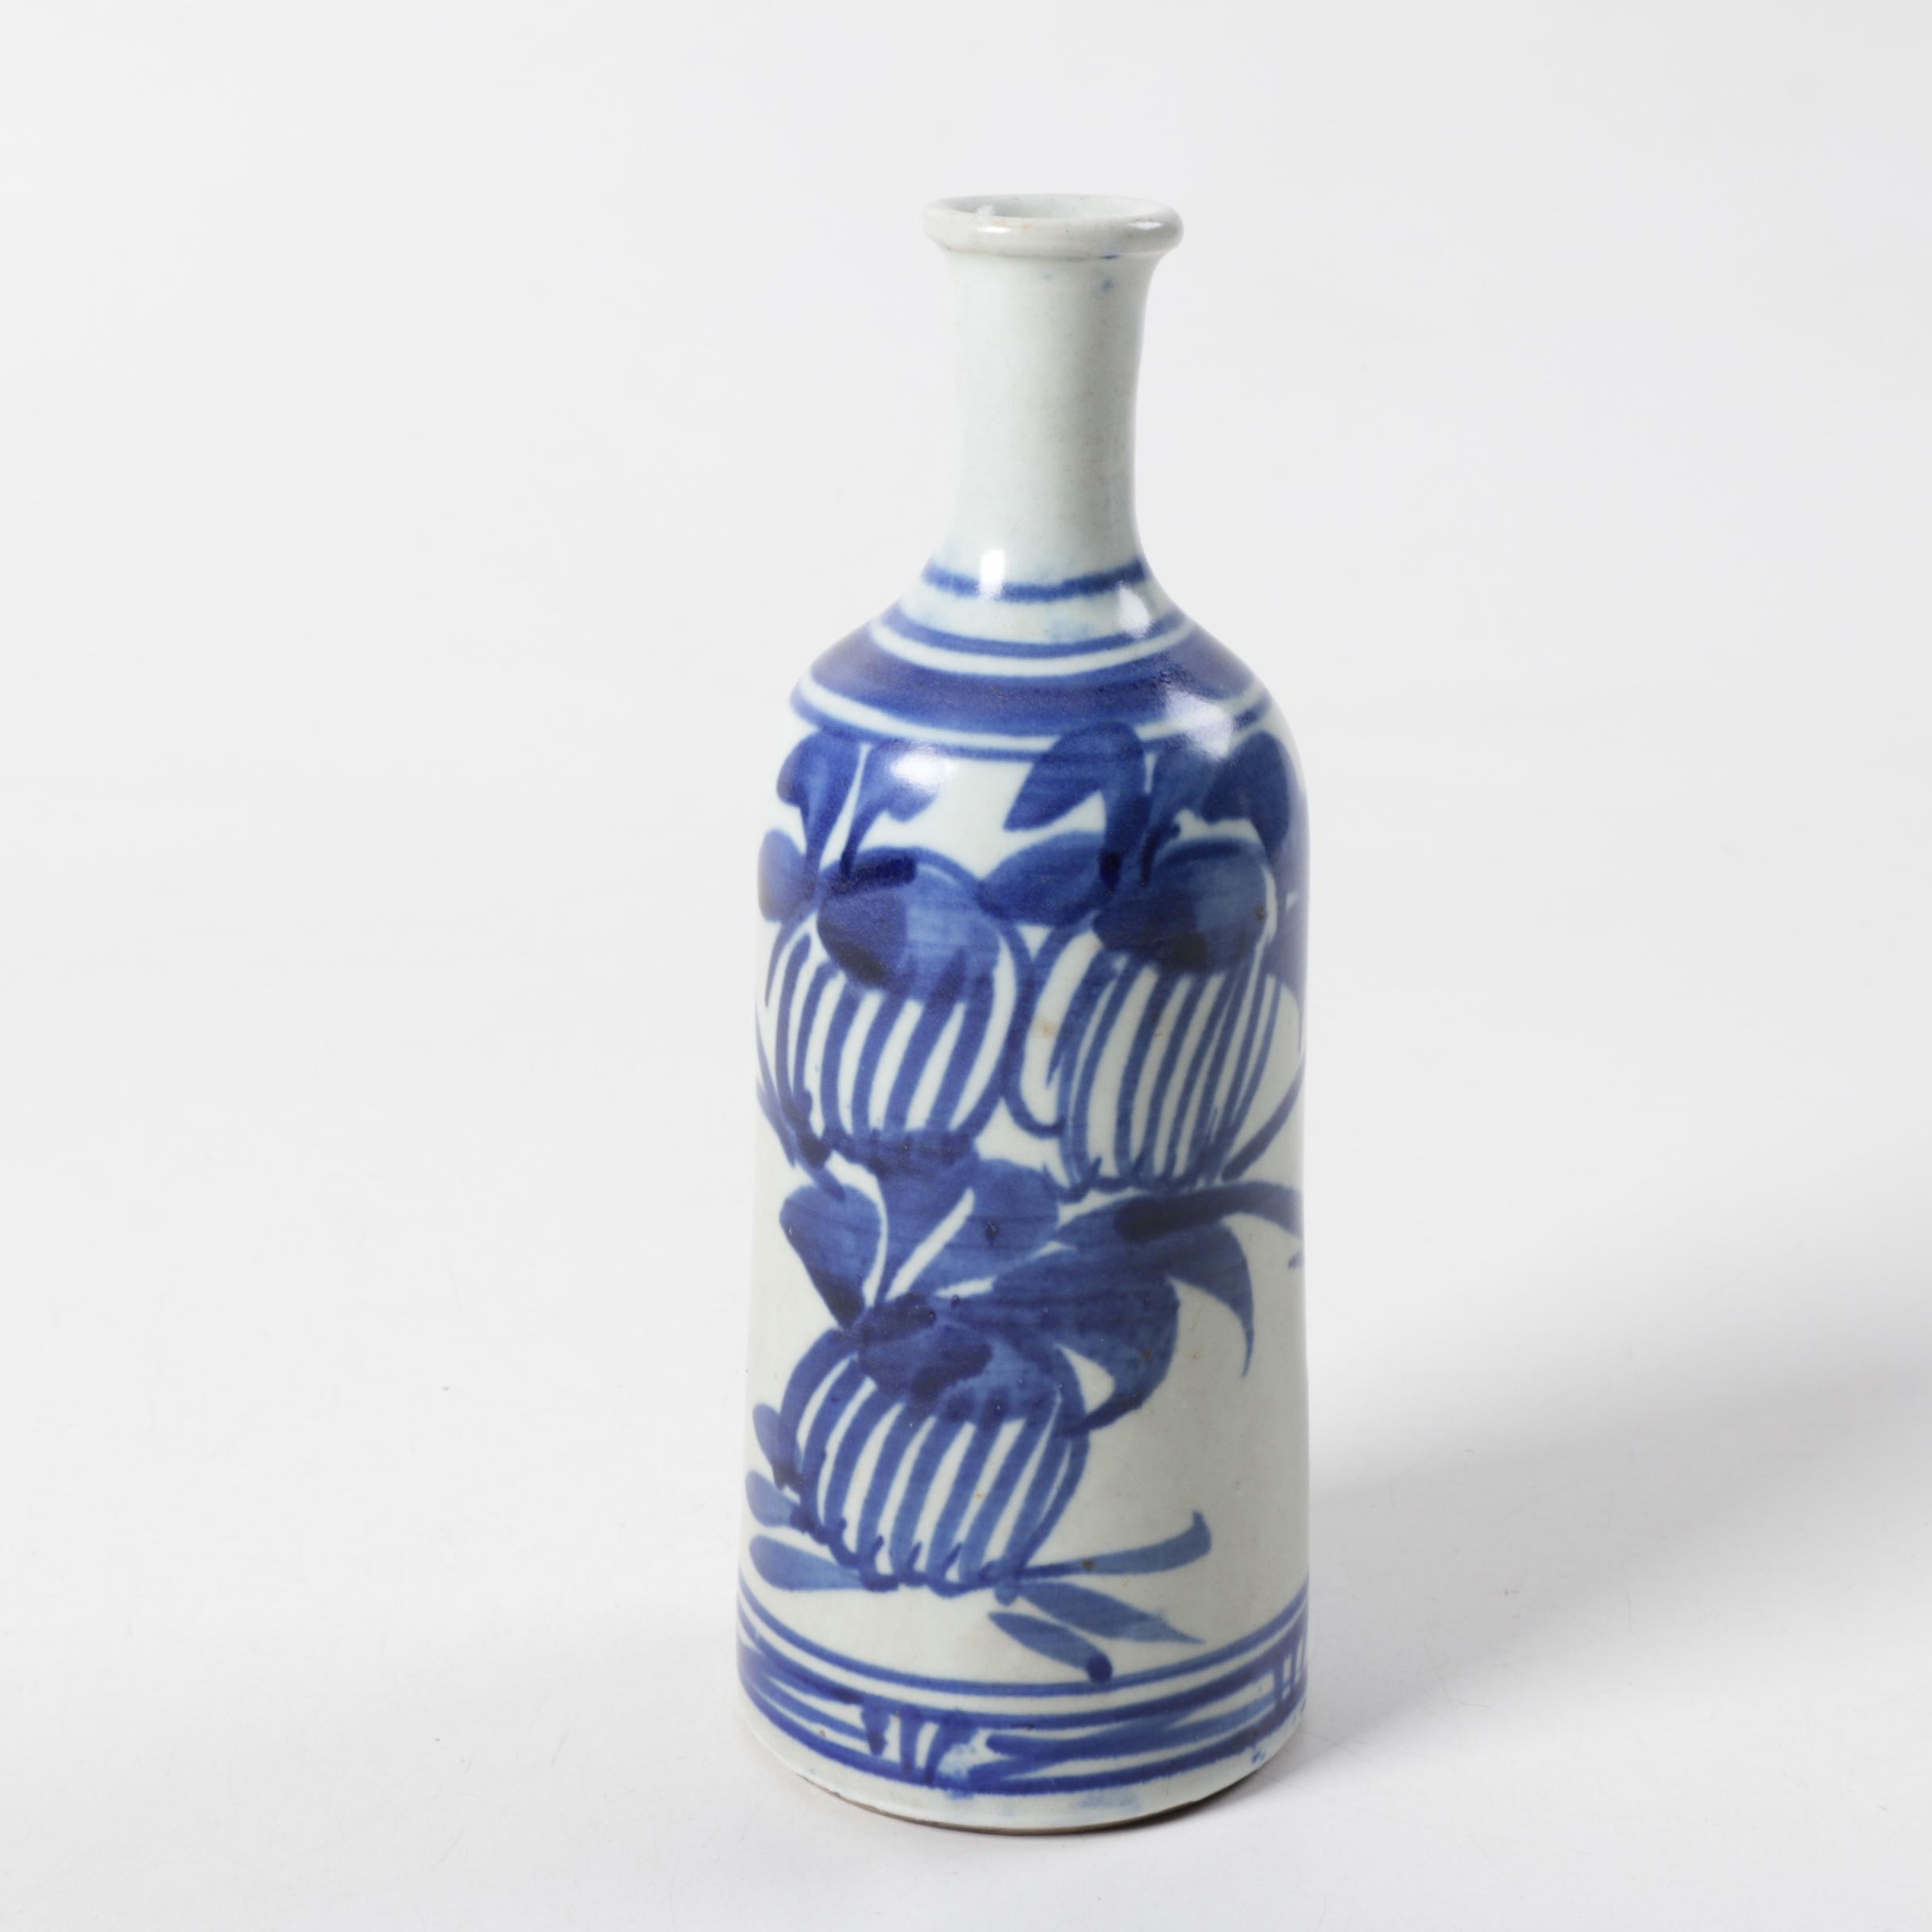 Asian Inspired Blue and White Ceramic Bud Vase